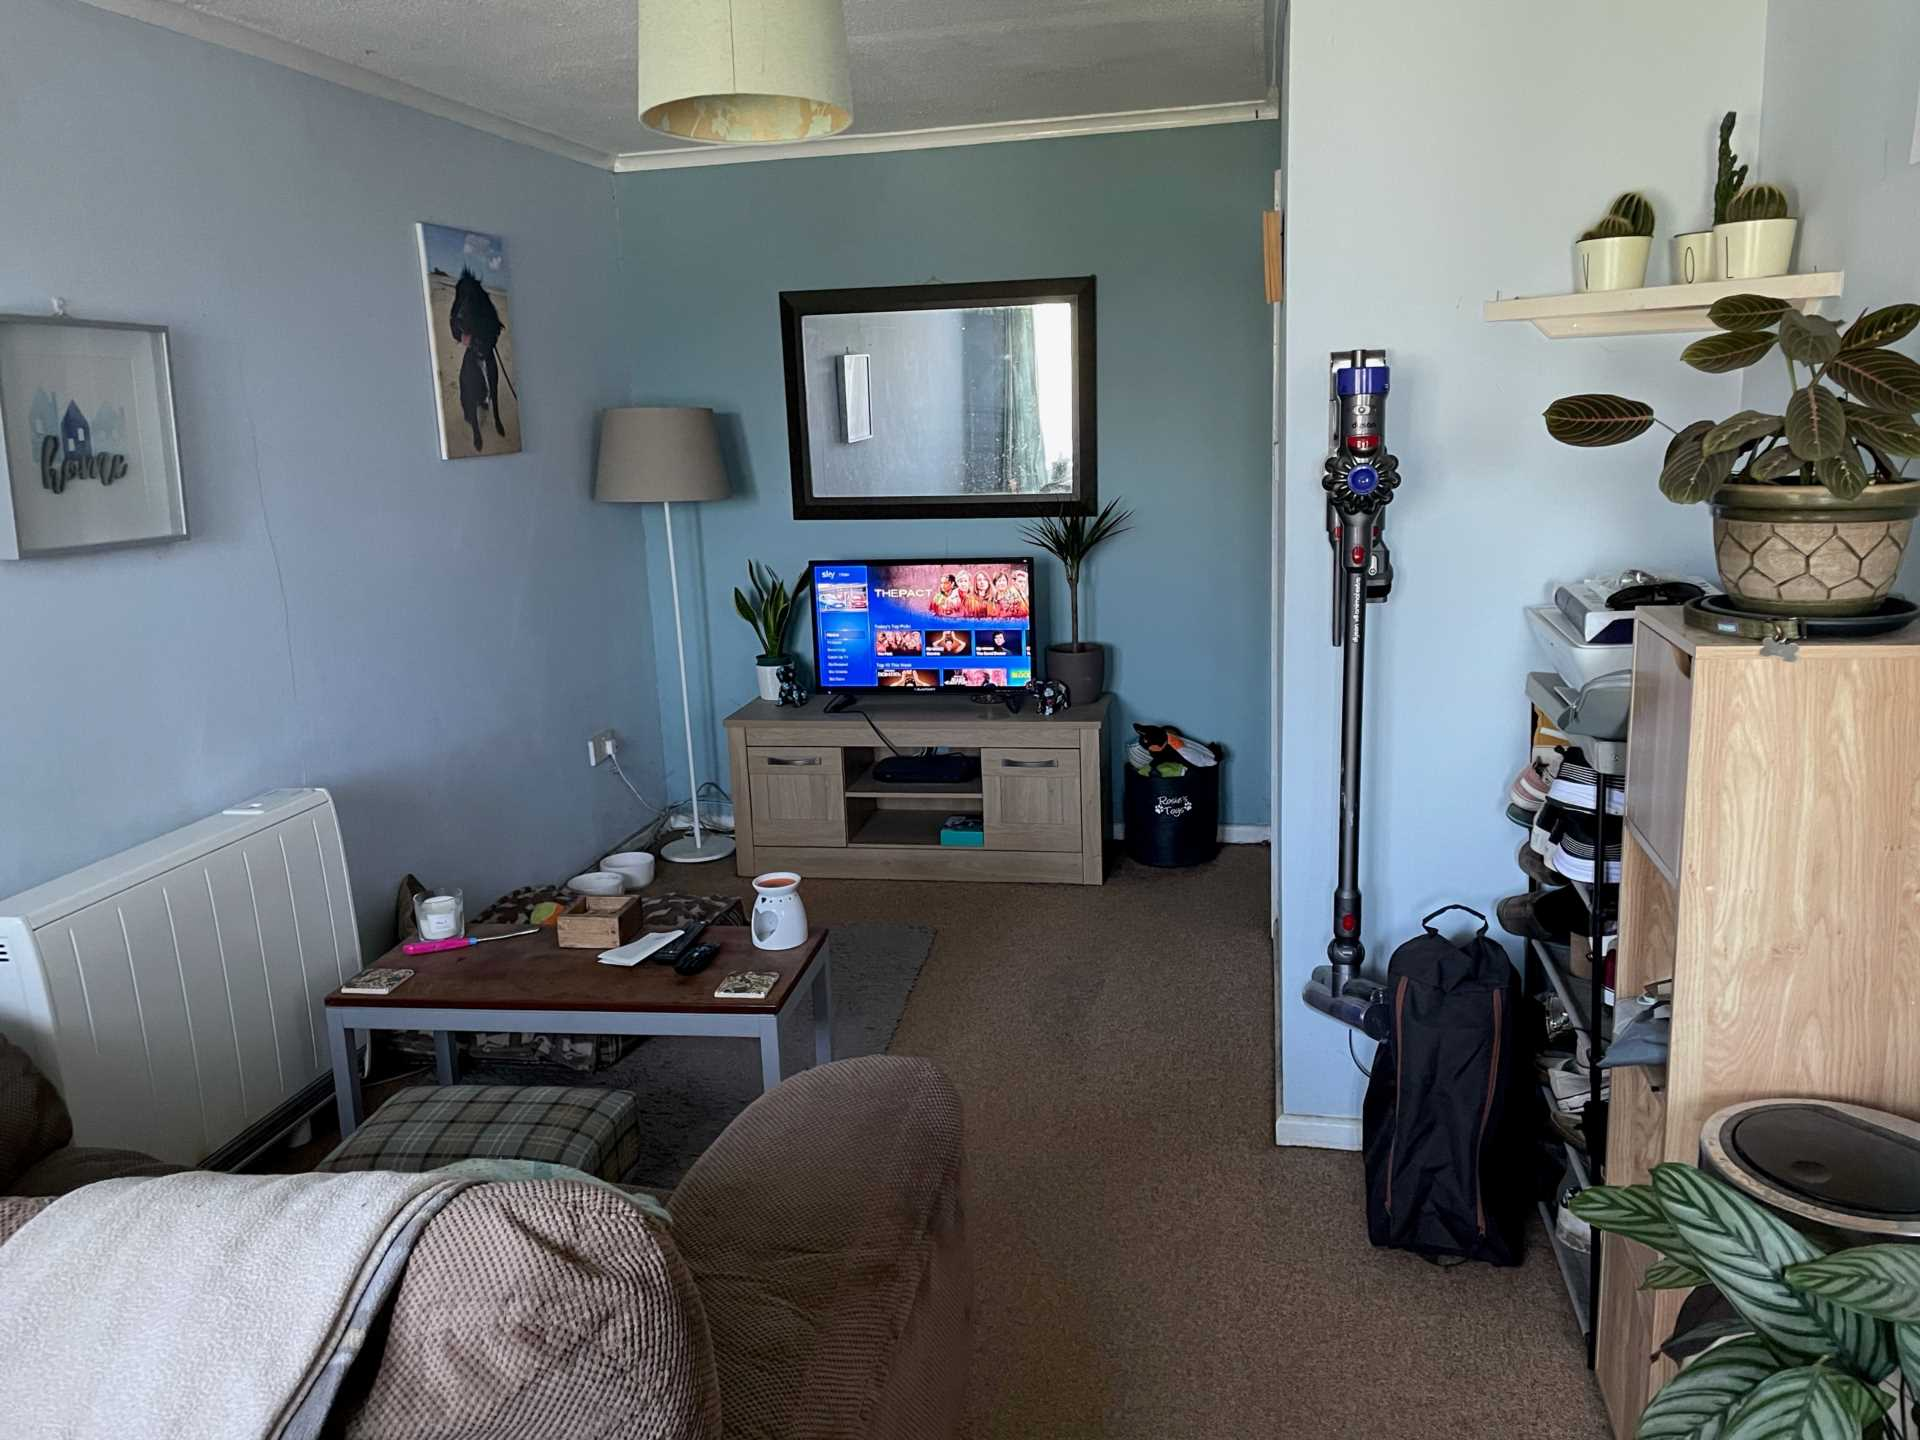 1 bed flat to rent in Blackmore Road, Shaftesbury, Shaftesbury  - Property Image 2